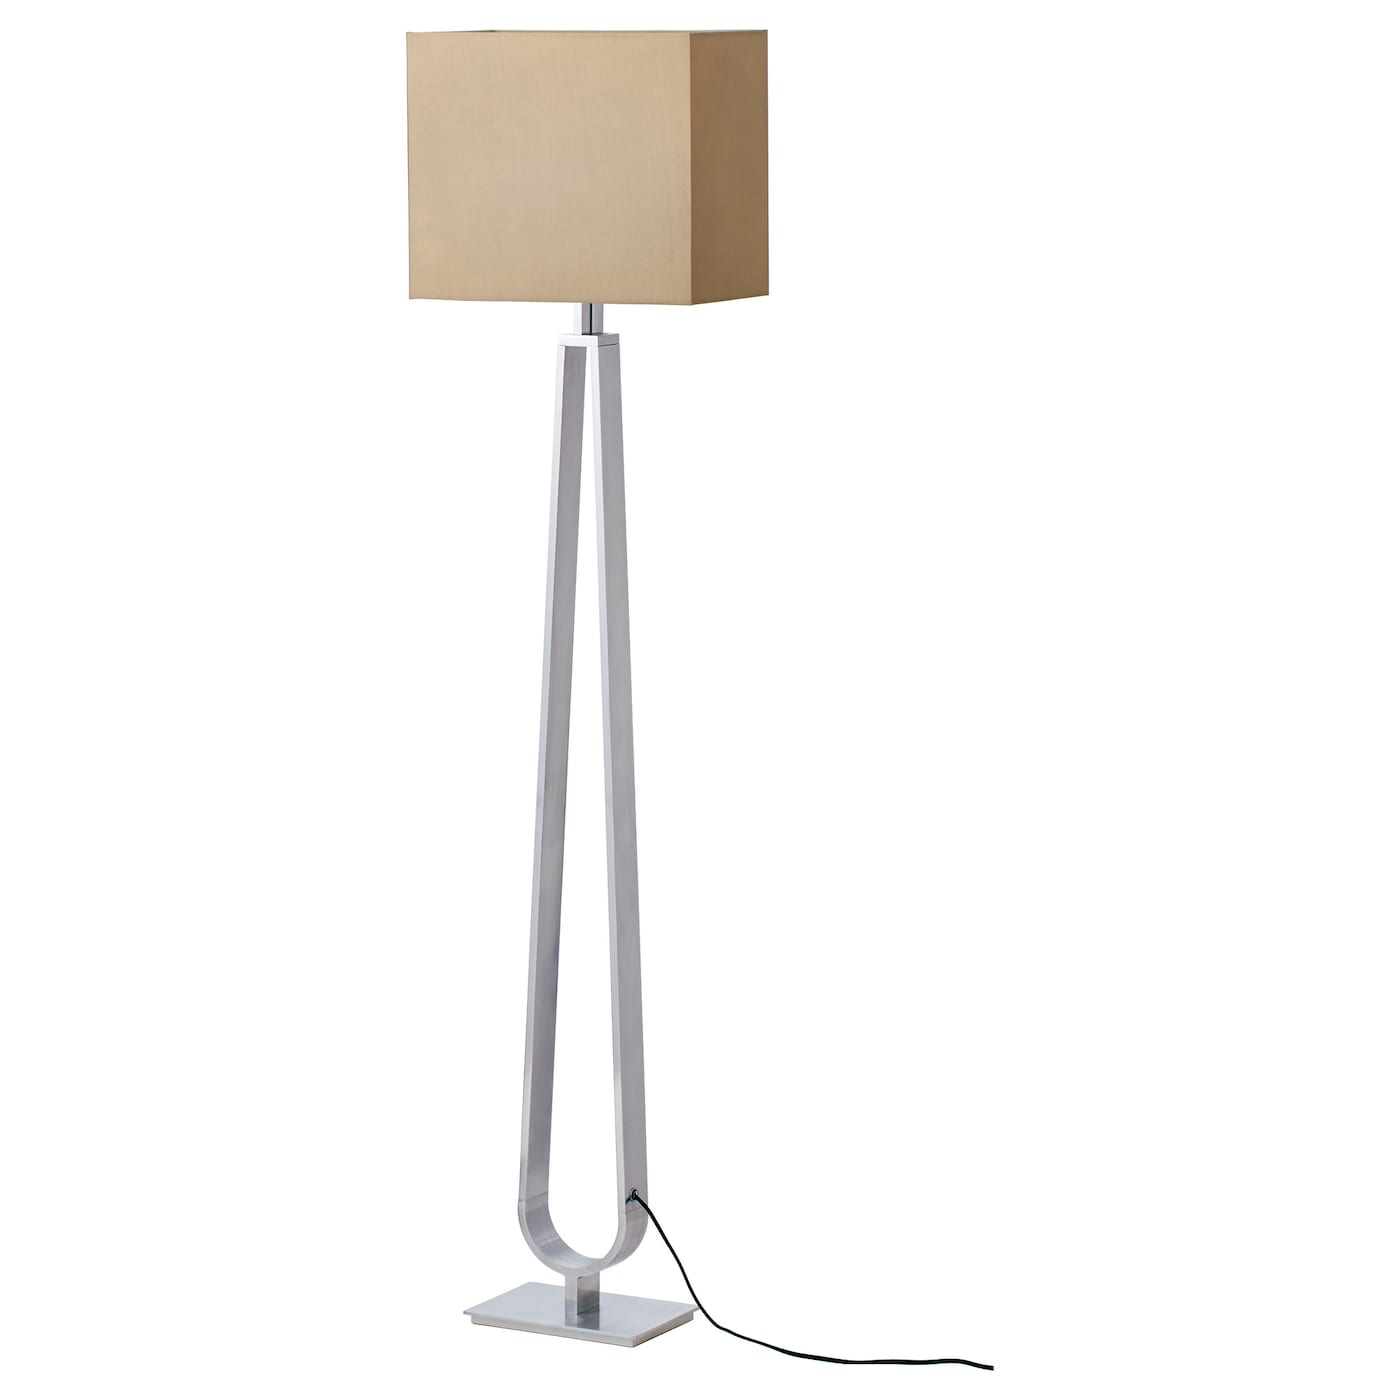 KLABB Floor lamp Light brown IKEA